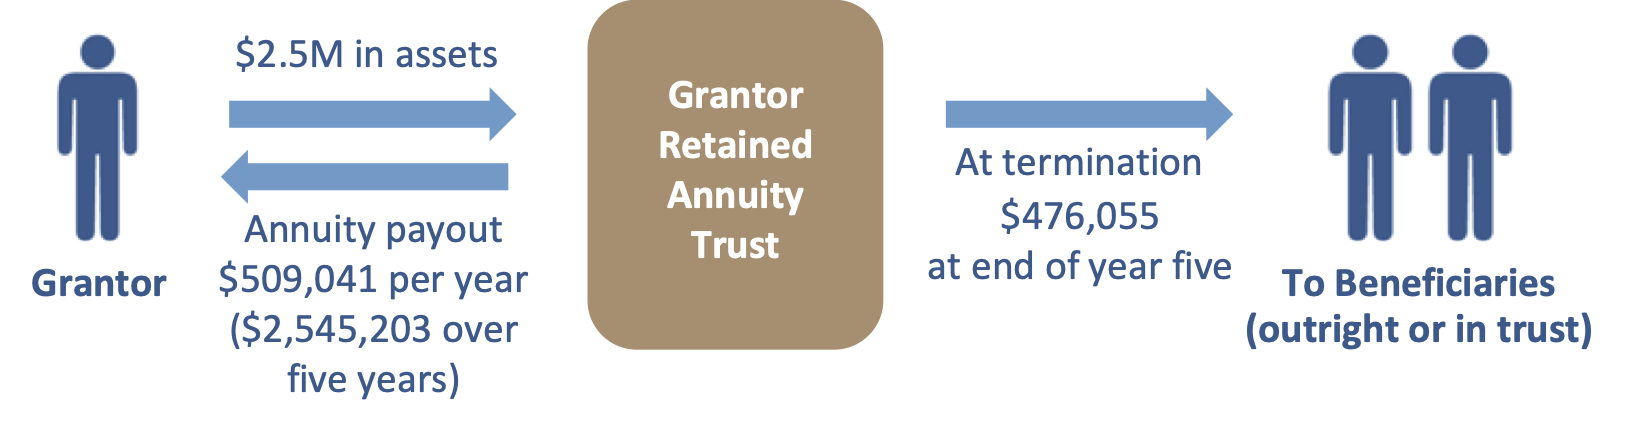 Grantor Retained Annuity Trust (July 2020)